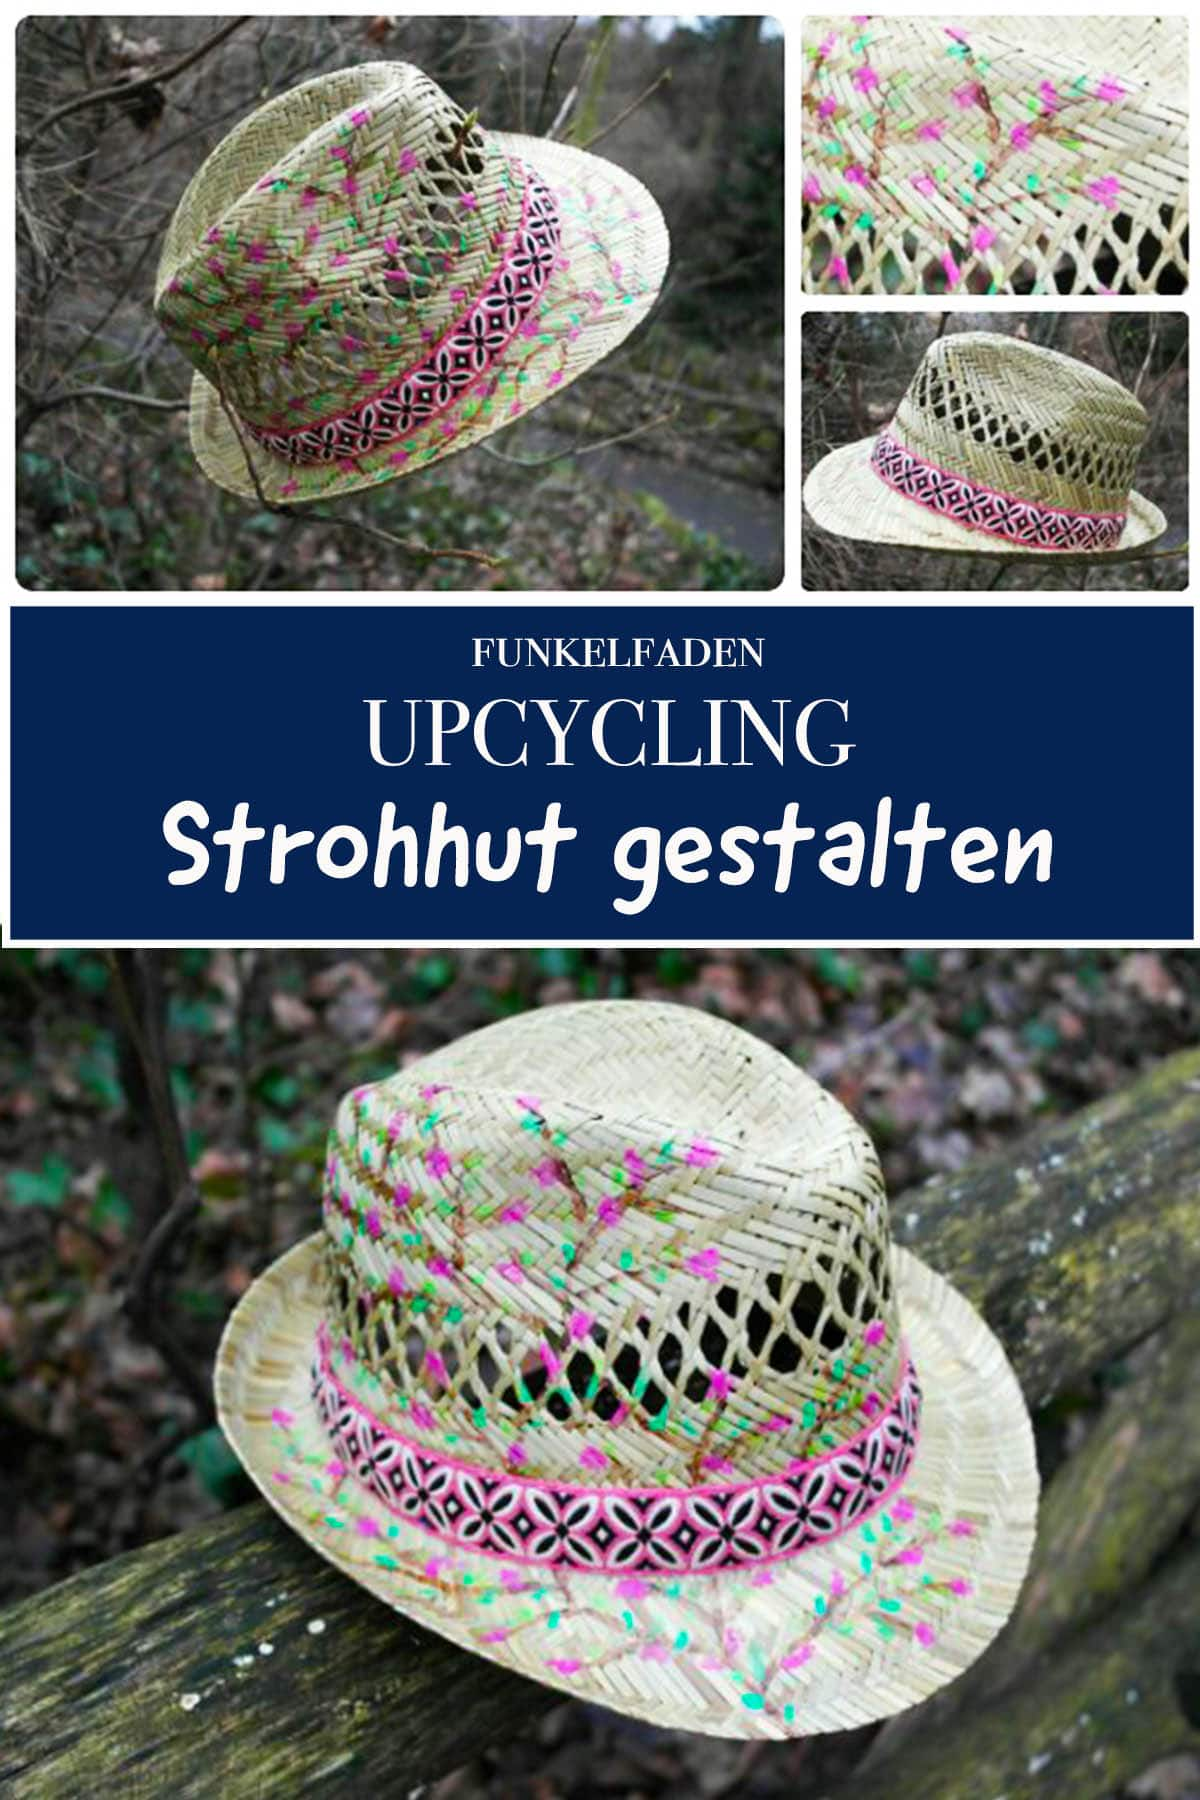 Strohhut upcycling